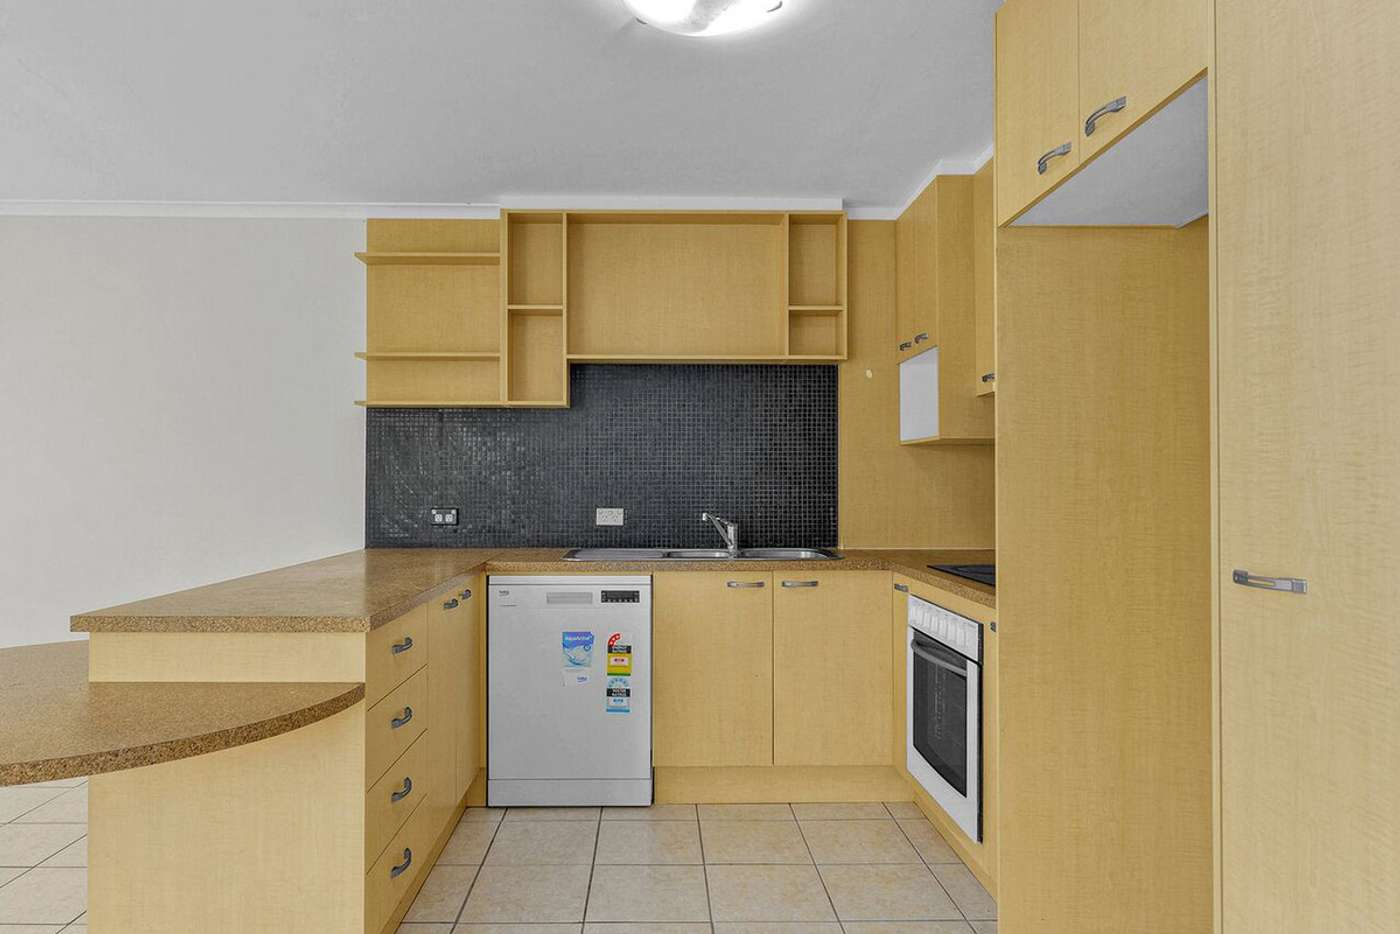 Sixth view of Homely apartment listing, 89 Thorn Street, Kangaroo Point QLD 4169